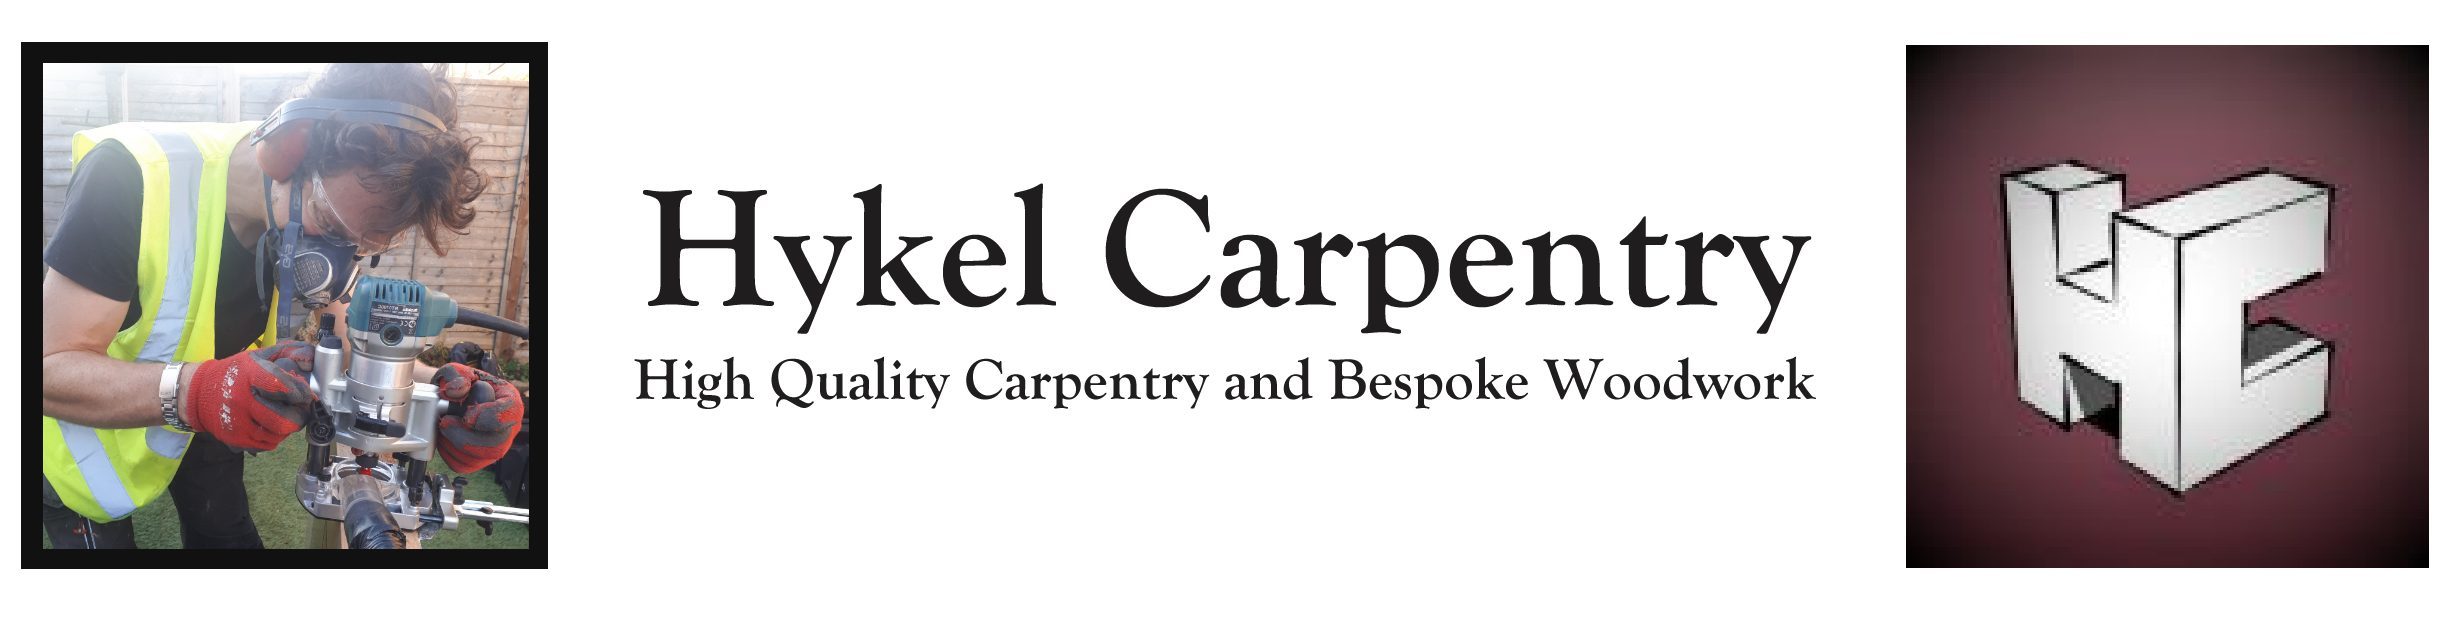 Hykel Carpentry